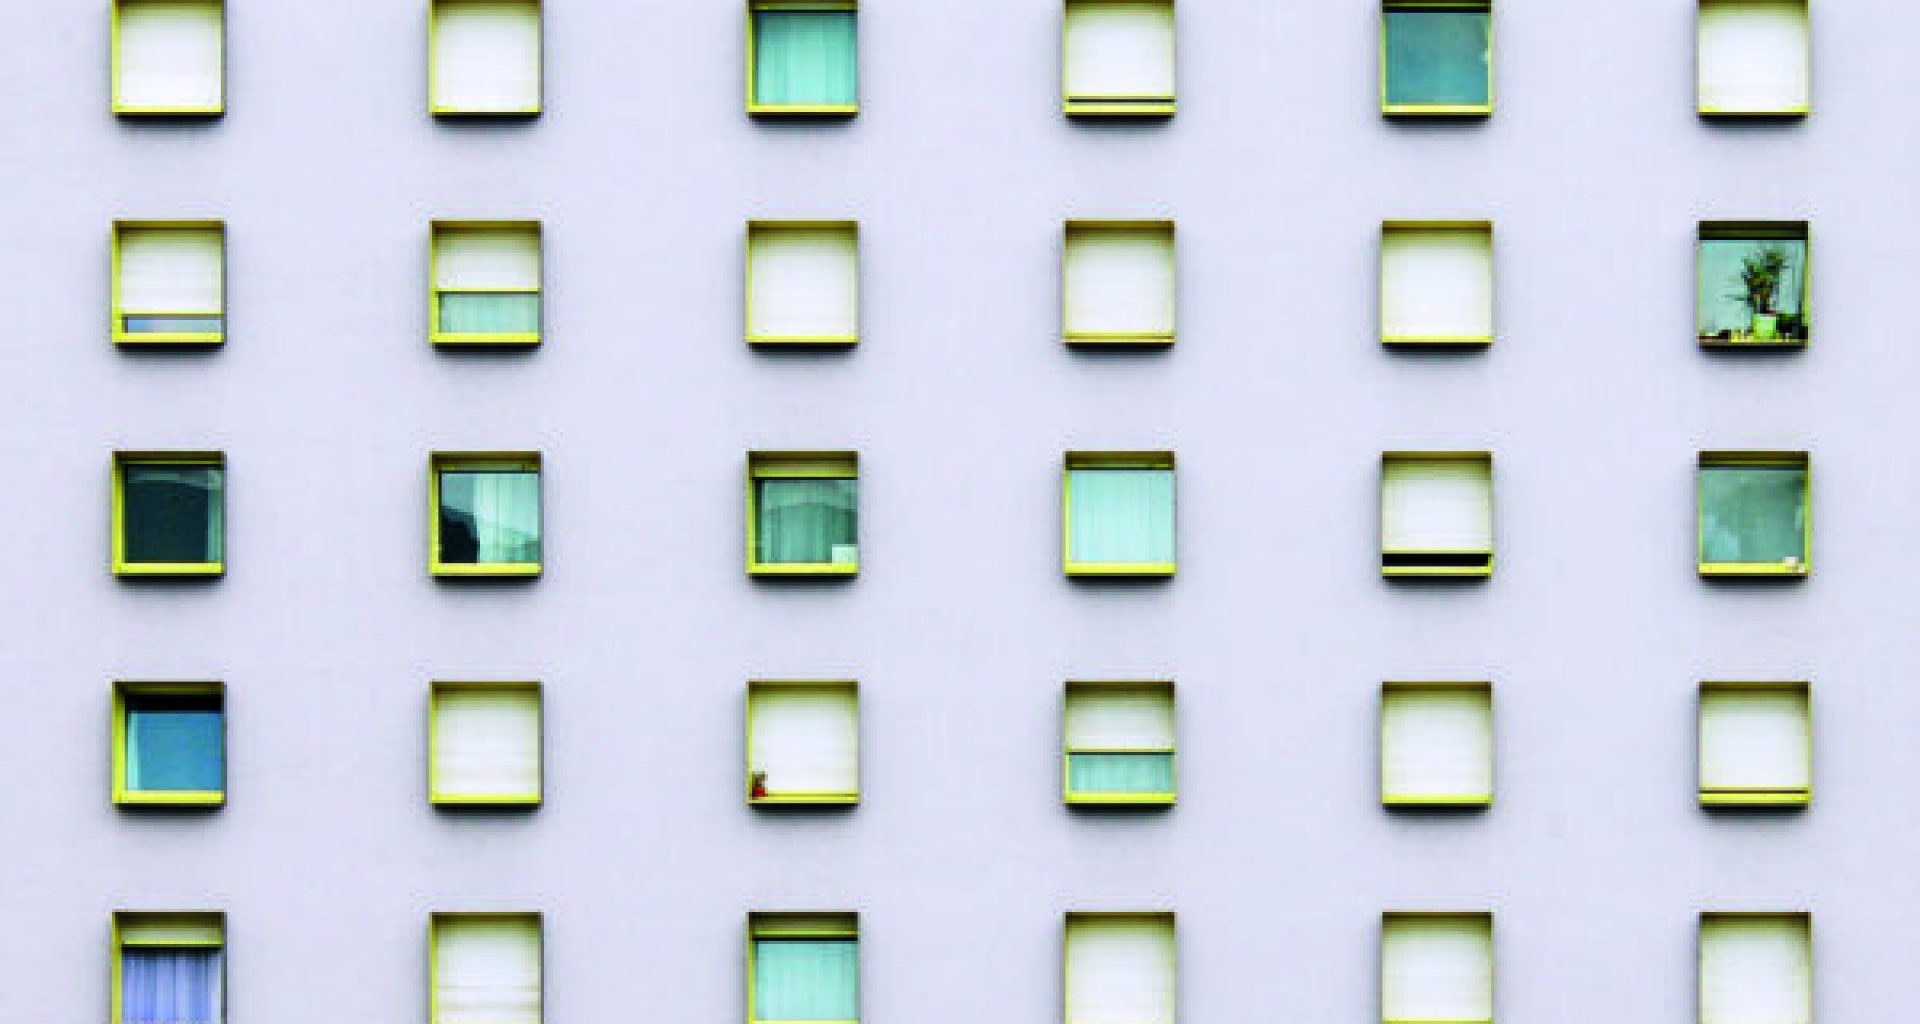 building-pattern-wall-architecture-33317